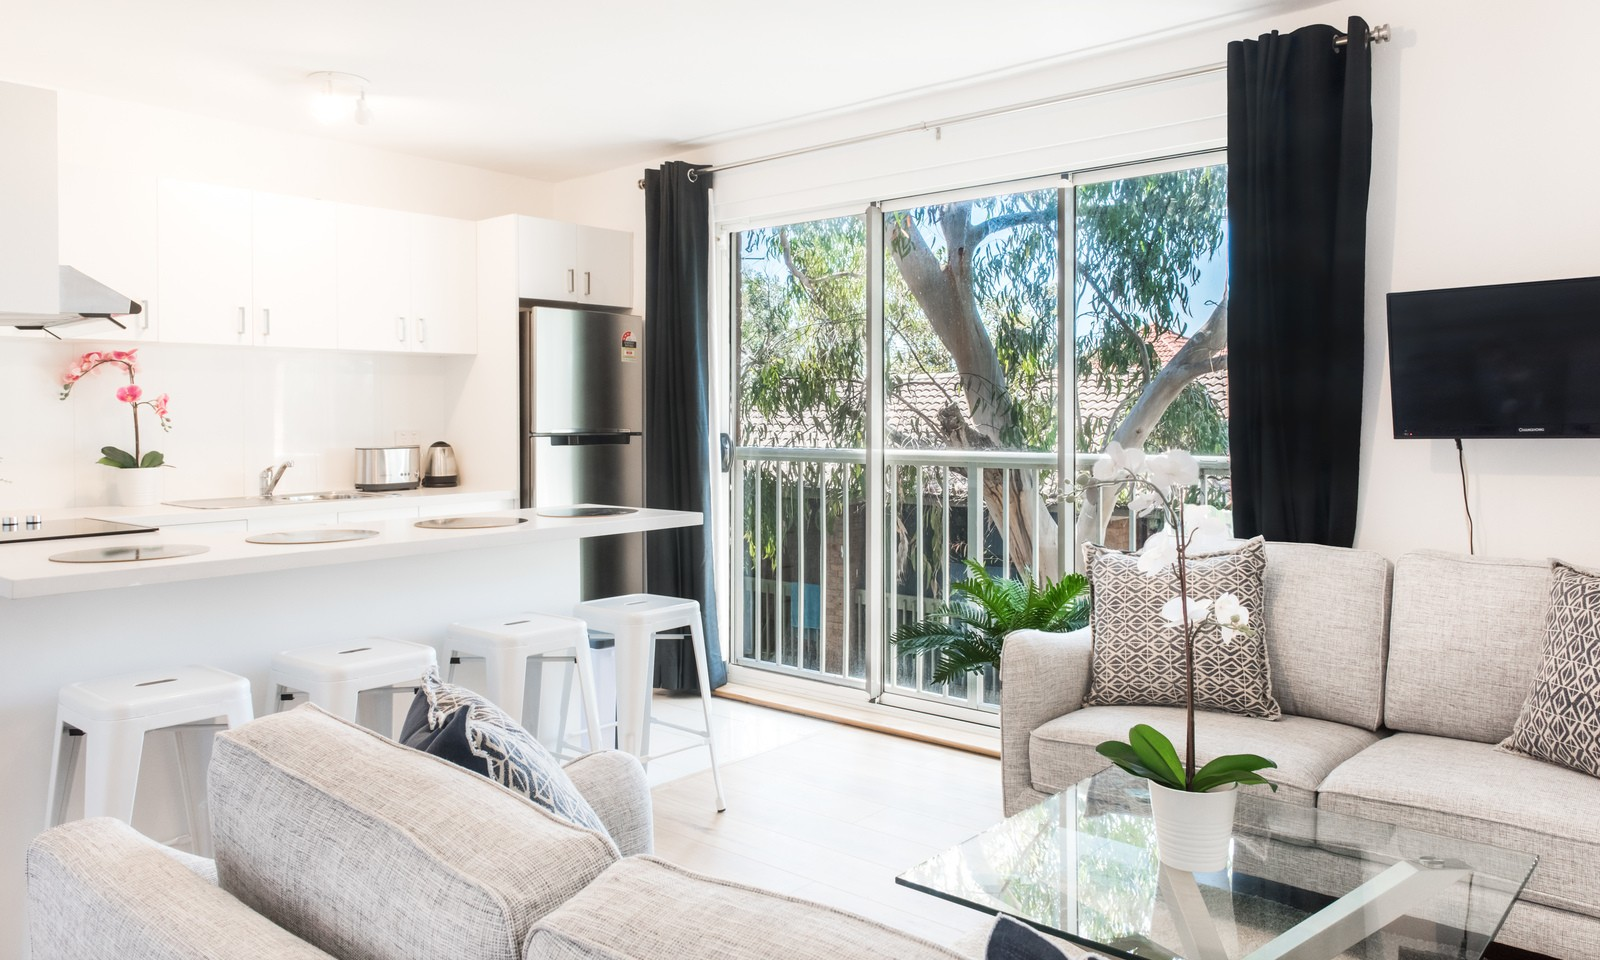 https://assets.boxdice.com.au/oz_combined_realty/rental_listings/83/20f44d65.jpg?crop=1600x960